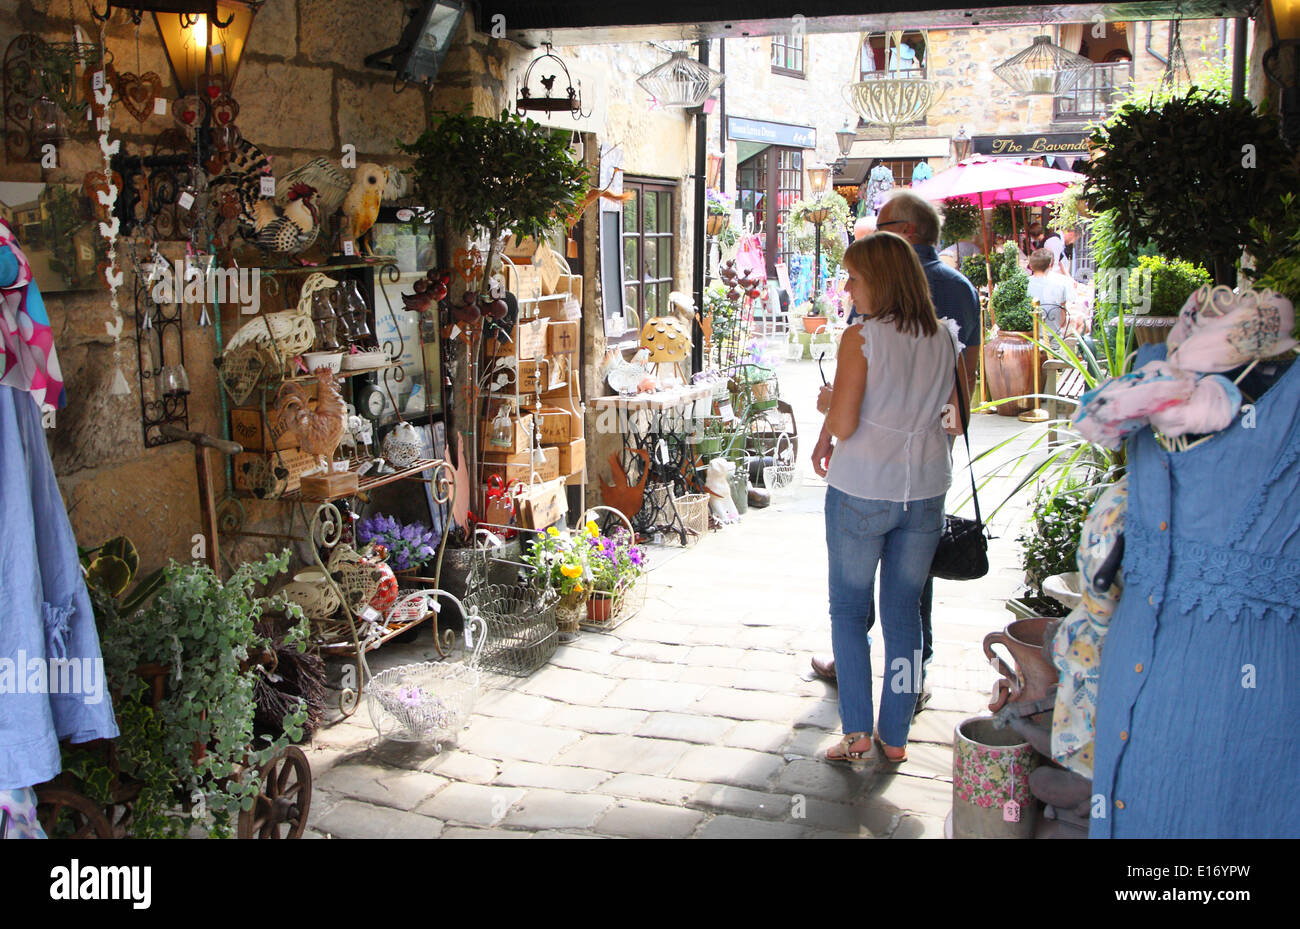 A couple peruse the specialty shops in the Hebden Court, Bakewell, Peak District, Derbyshire, England, UK - Stock Image